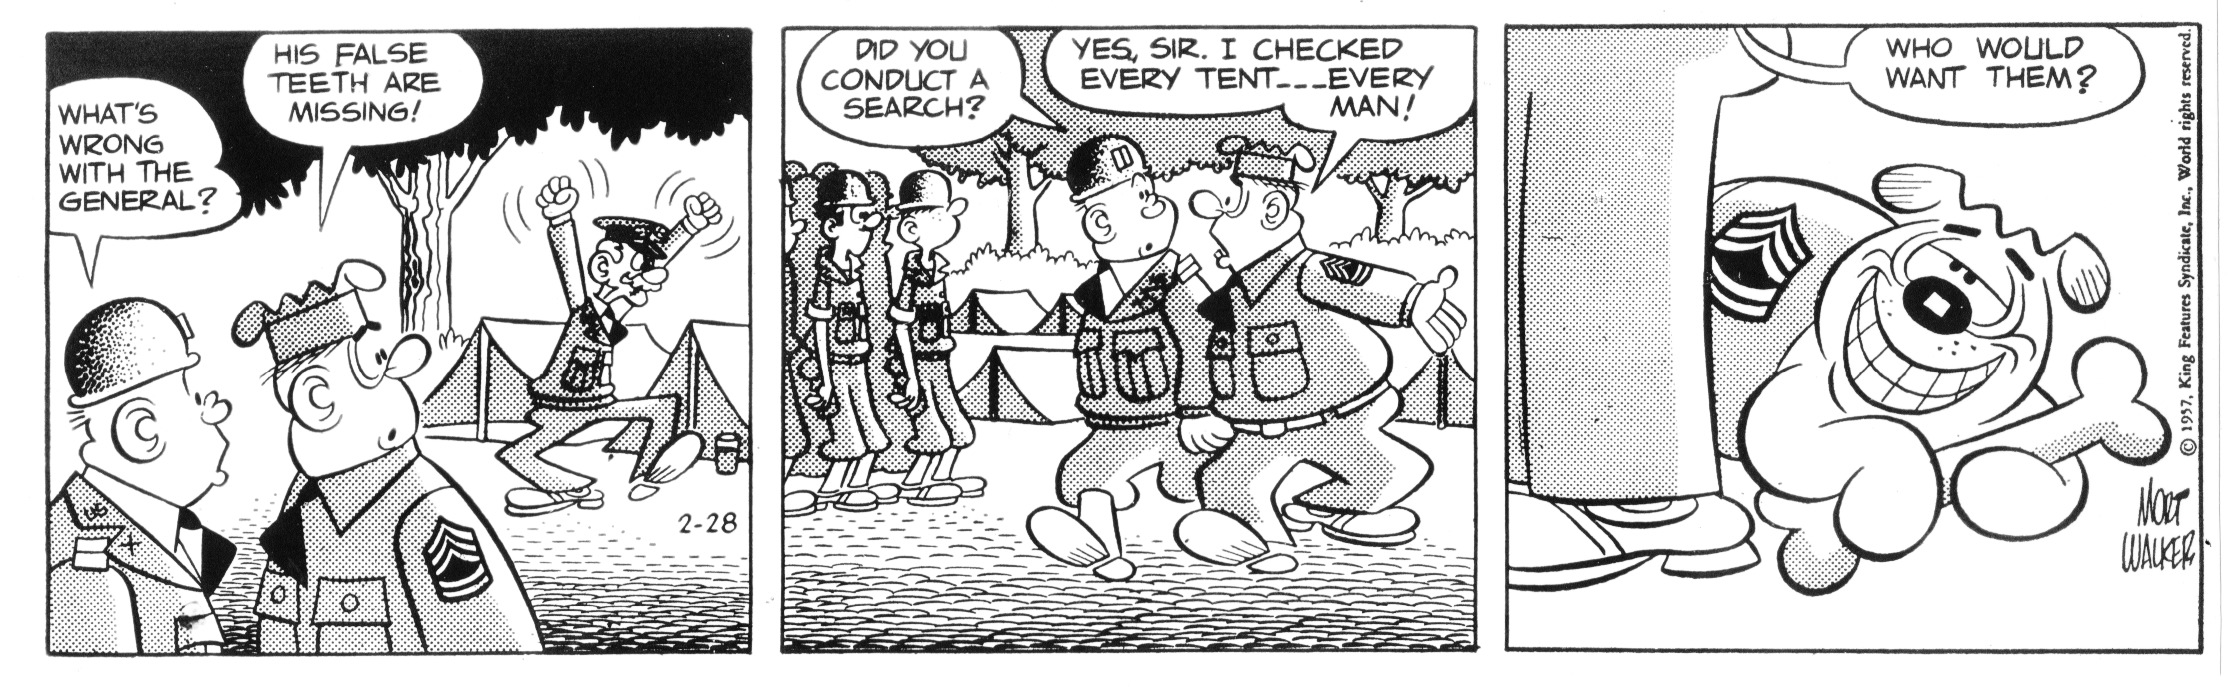 Beetle Bailey daily strip, 1957.